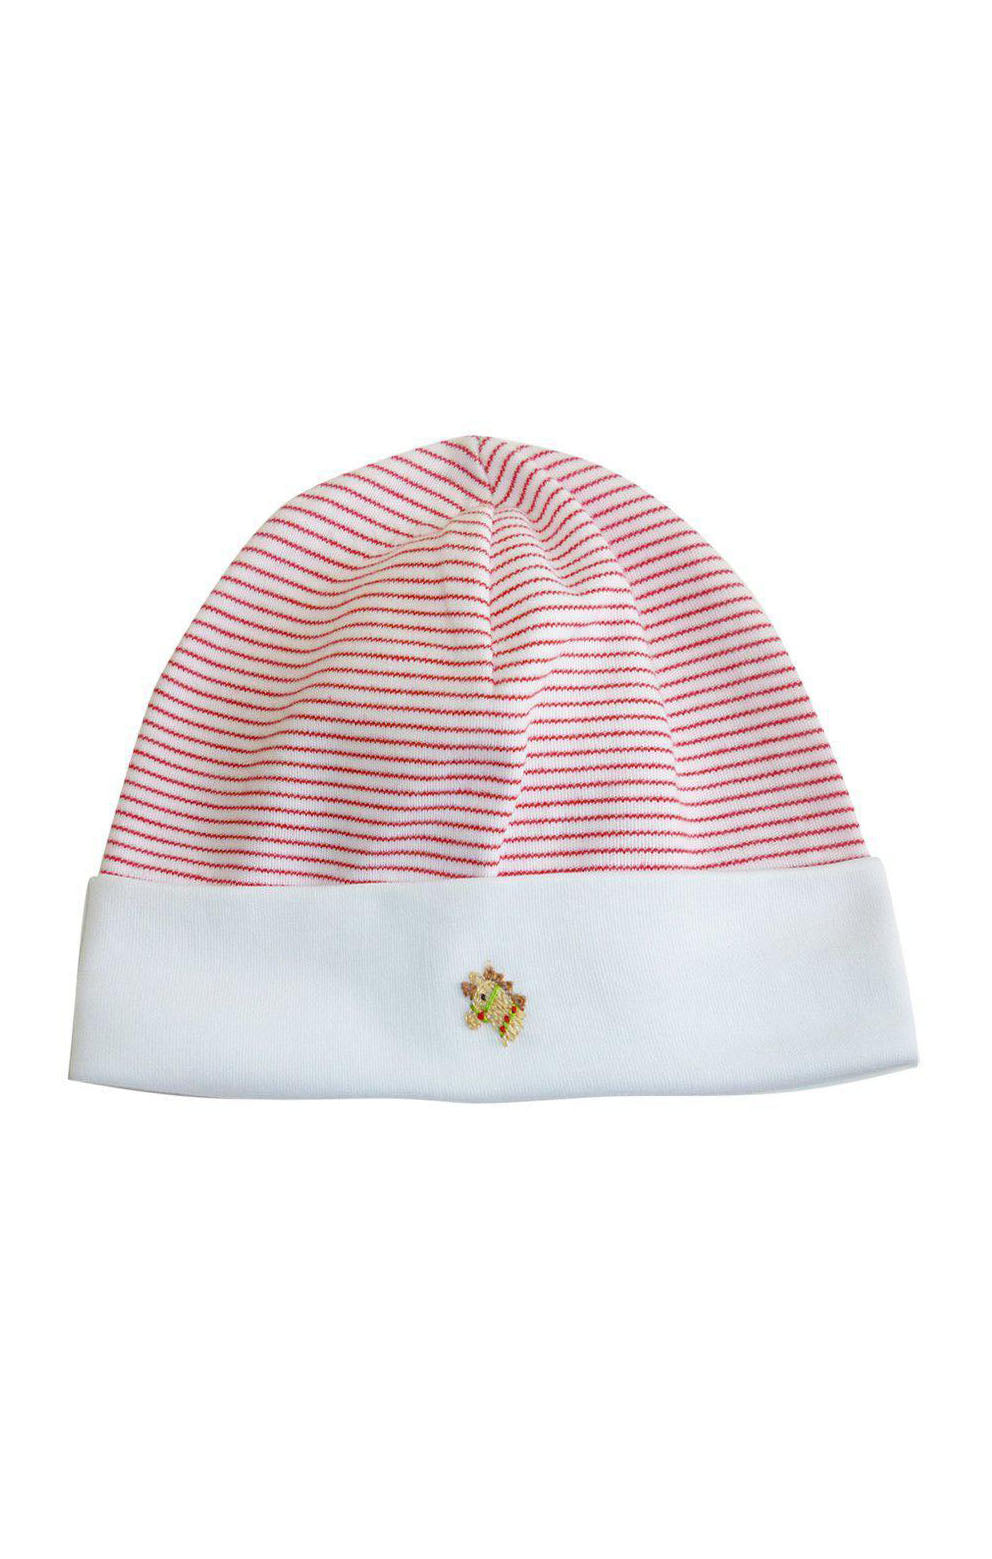 Rocking Horses Hat - Little Threads Inc. Children's Clothing